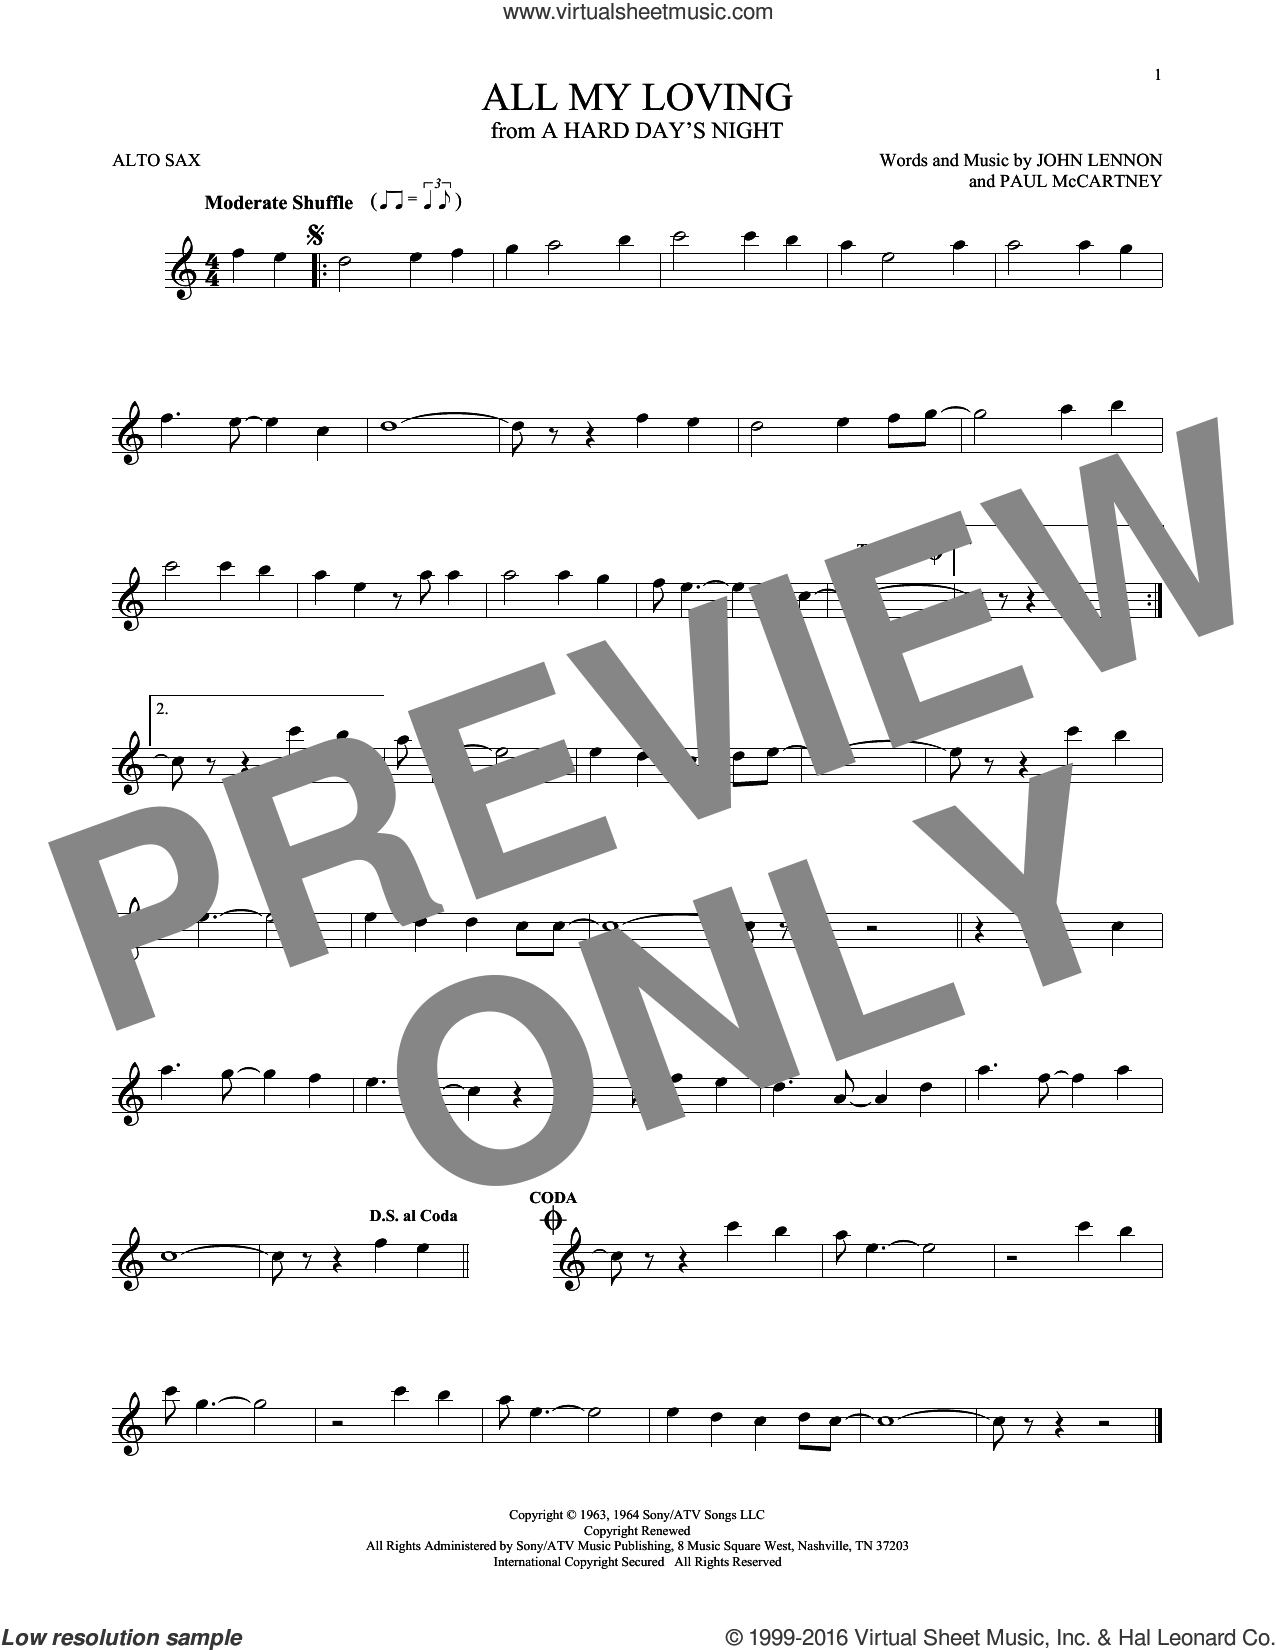 All My Loving sheet music for alto saxophone solo by The Beatles, John Lennon and Paul McCartney, intermediate skill level